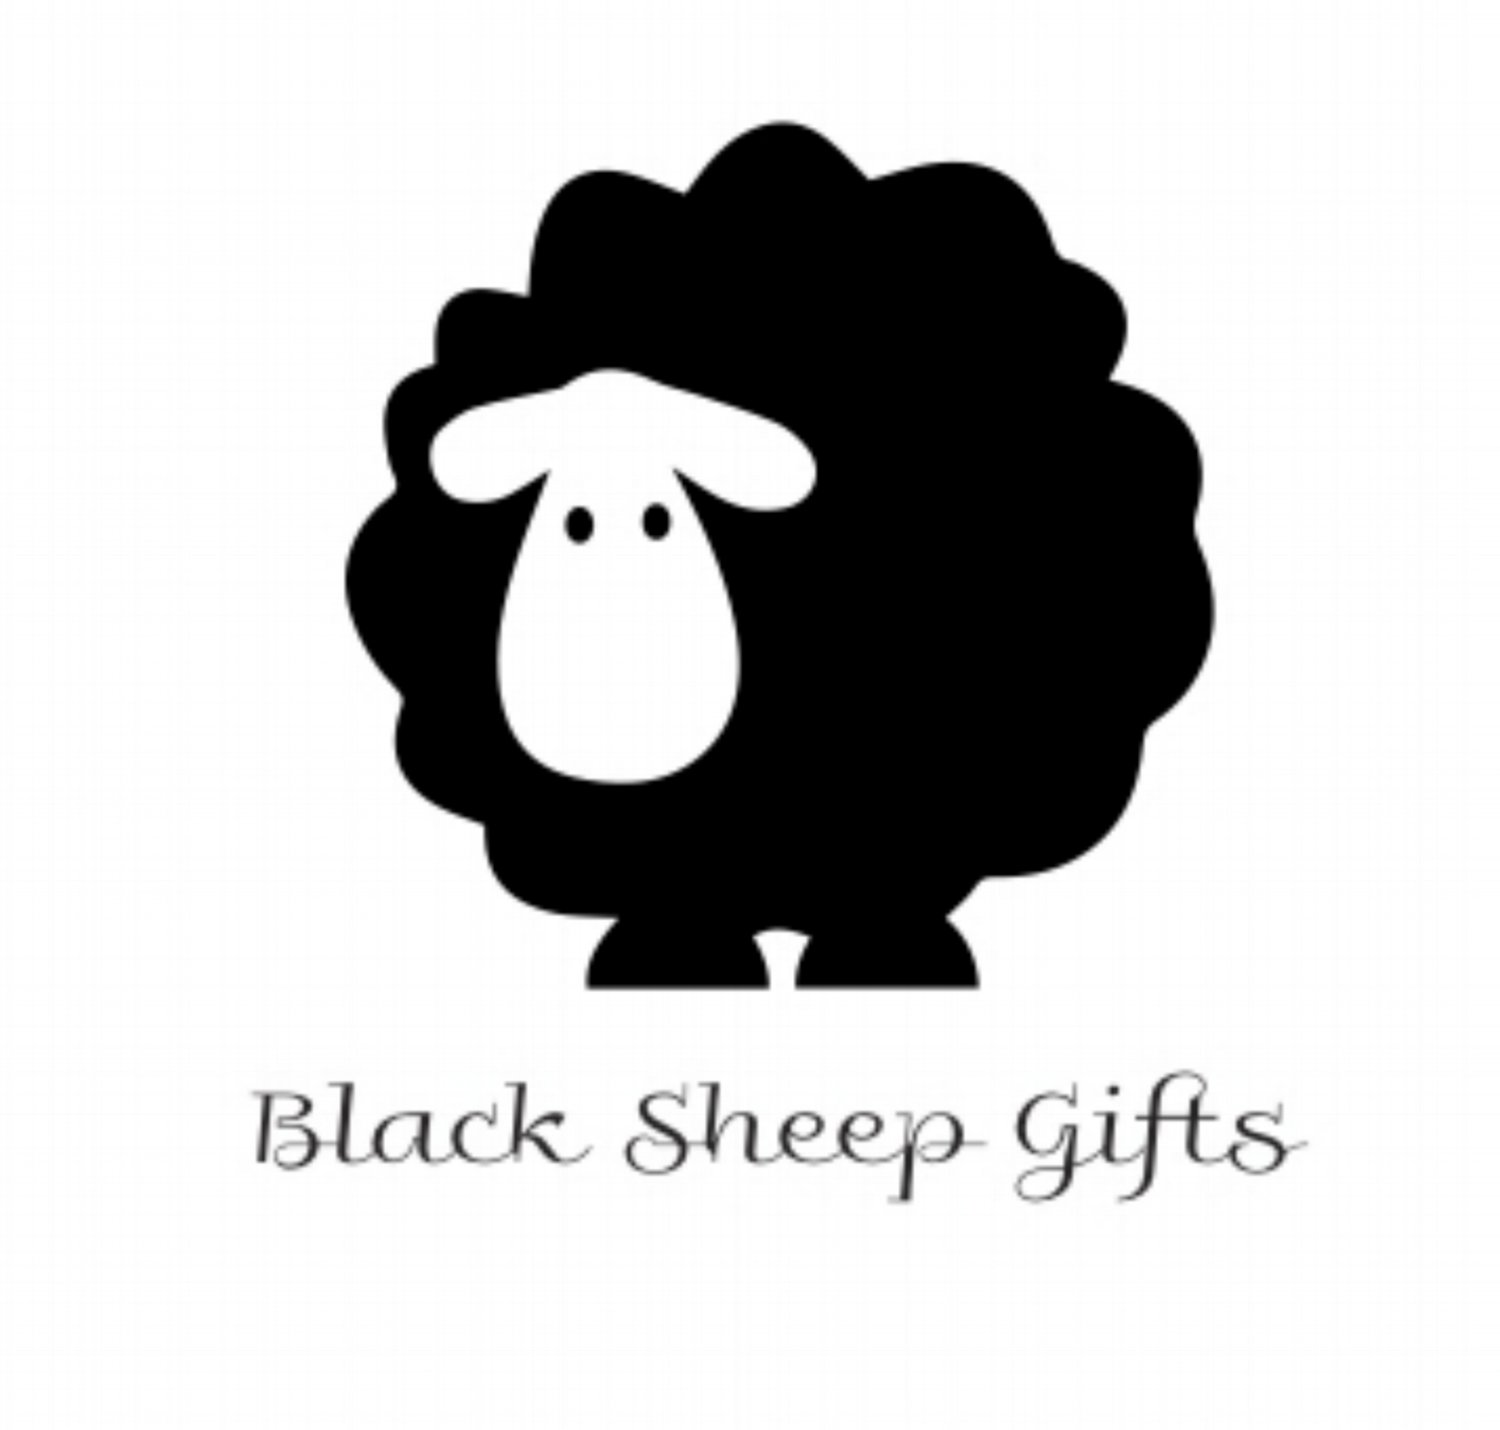 Black Sheep Gifts